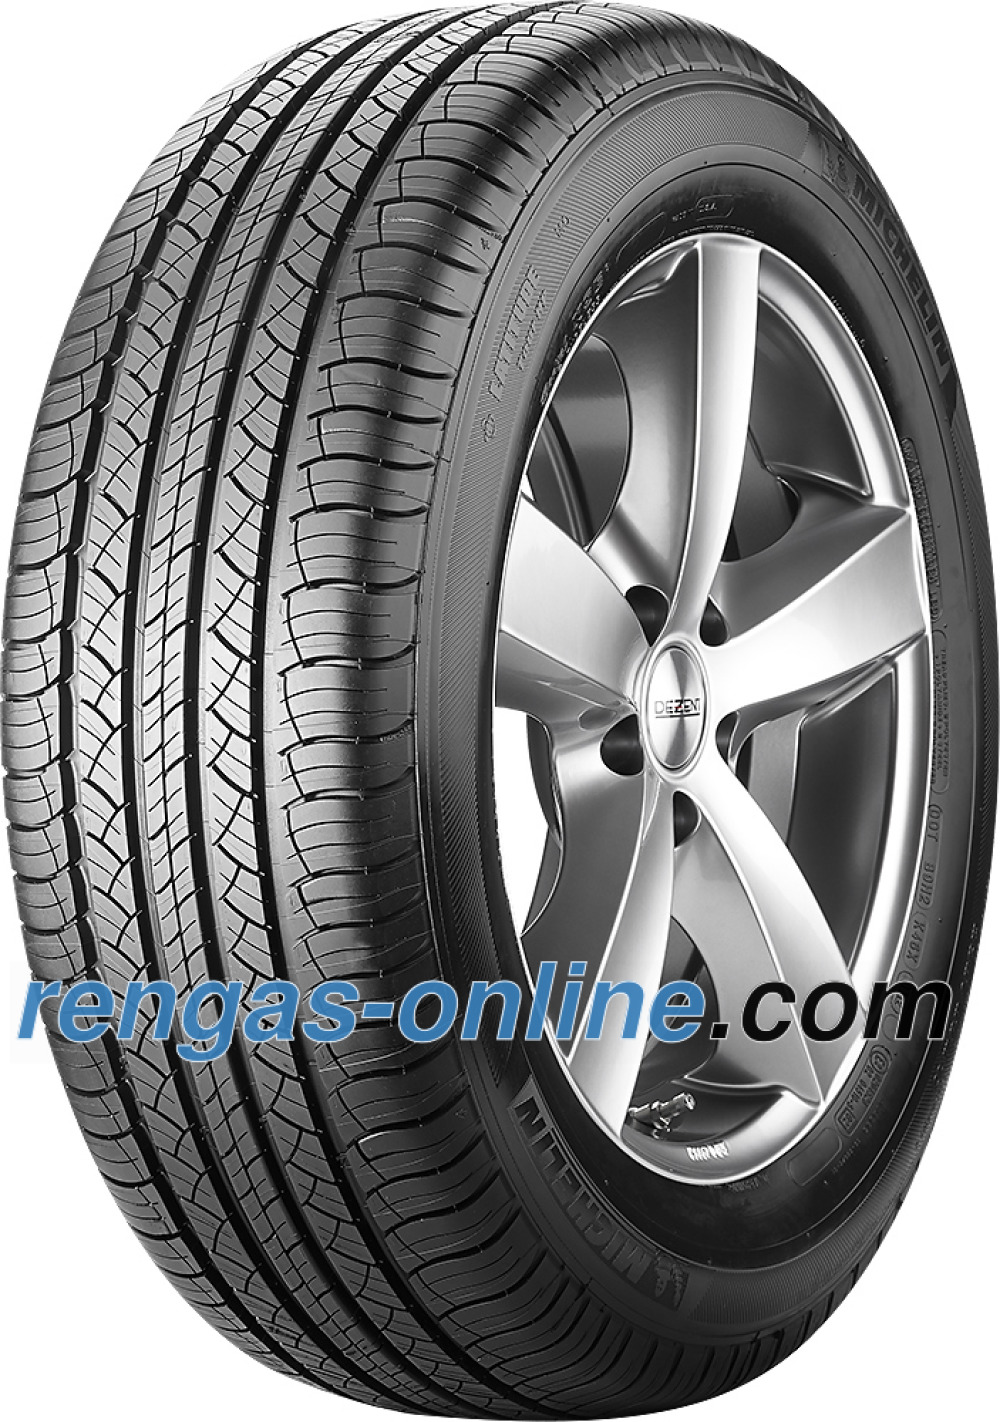 michelin-latitude-tour-hp-23555-r19-101h-ao-grnx